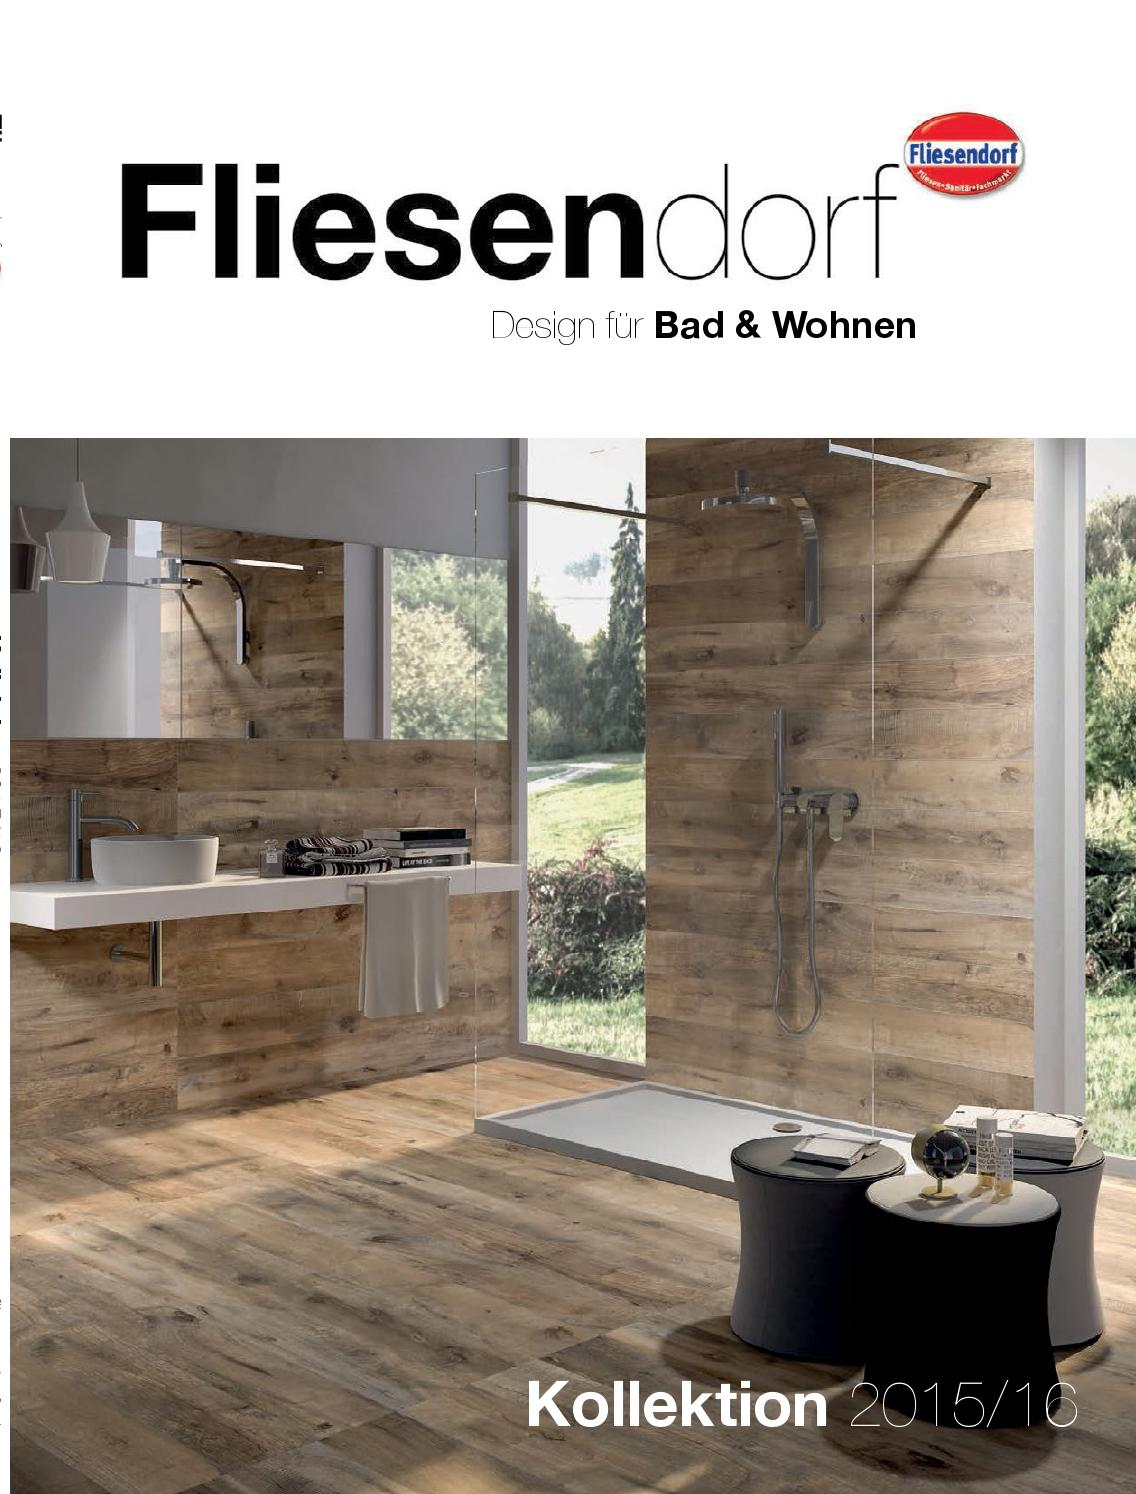 Badezimmer Fliesen 20 X 40 Fliesendorf Kollektion 2015 2016 By Fliesendorf At Issuu